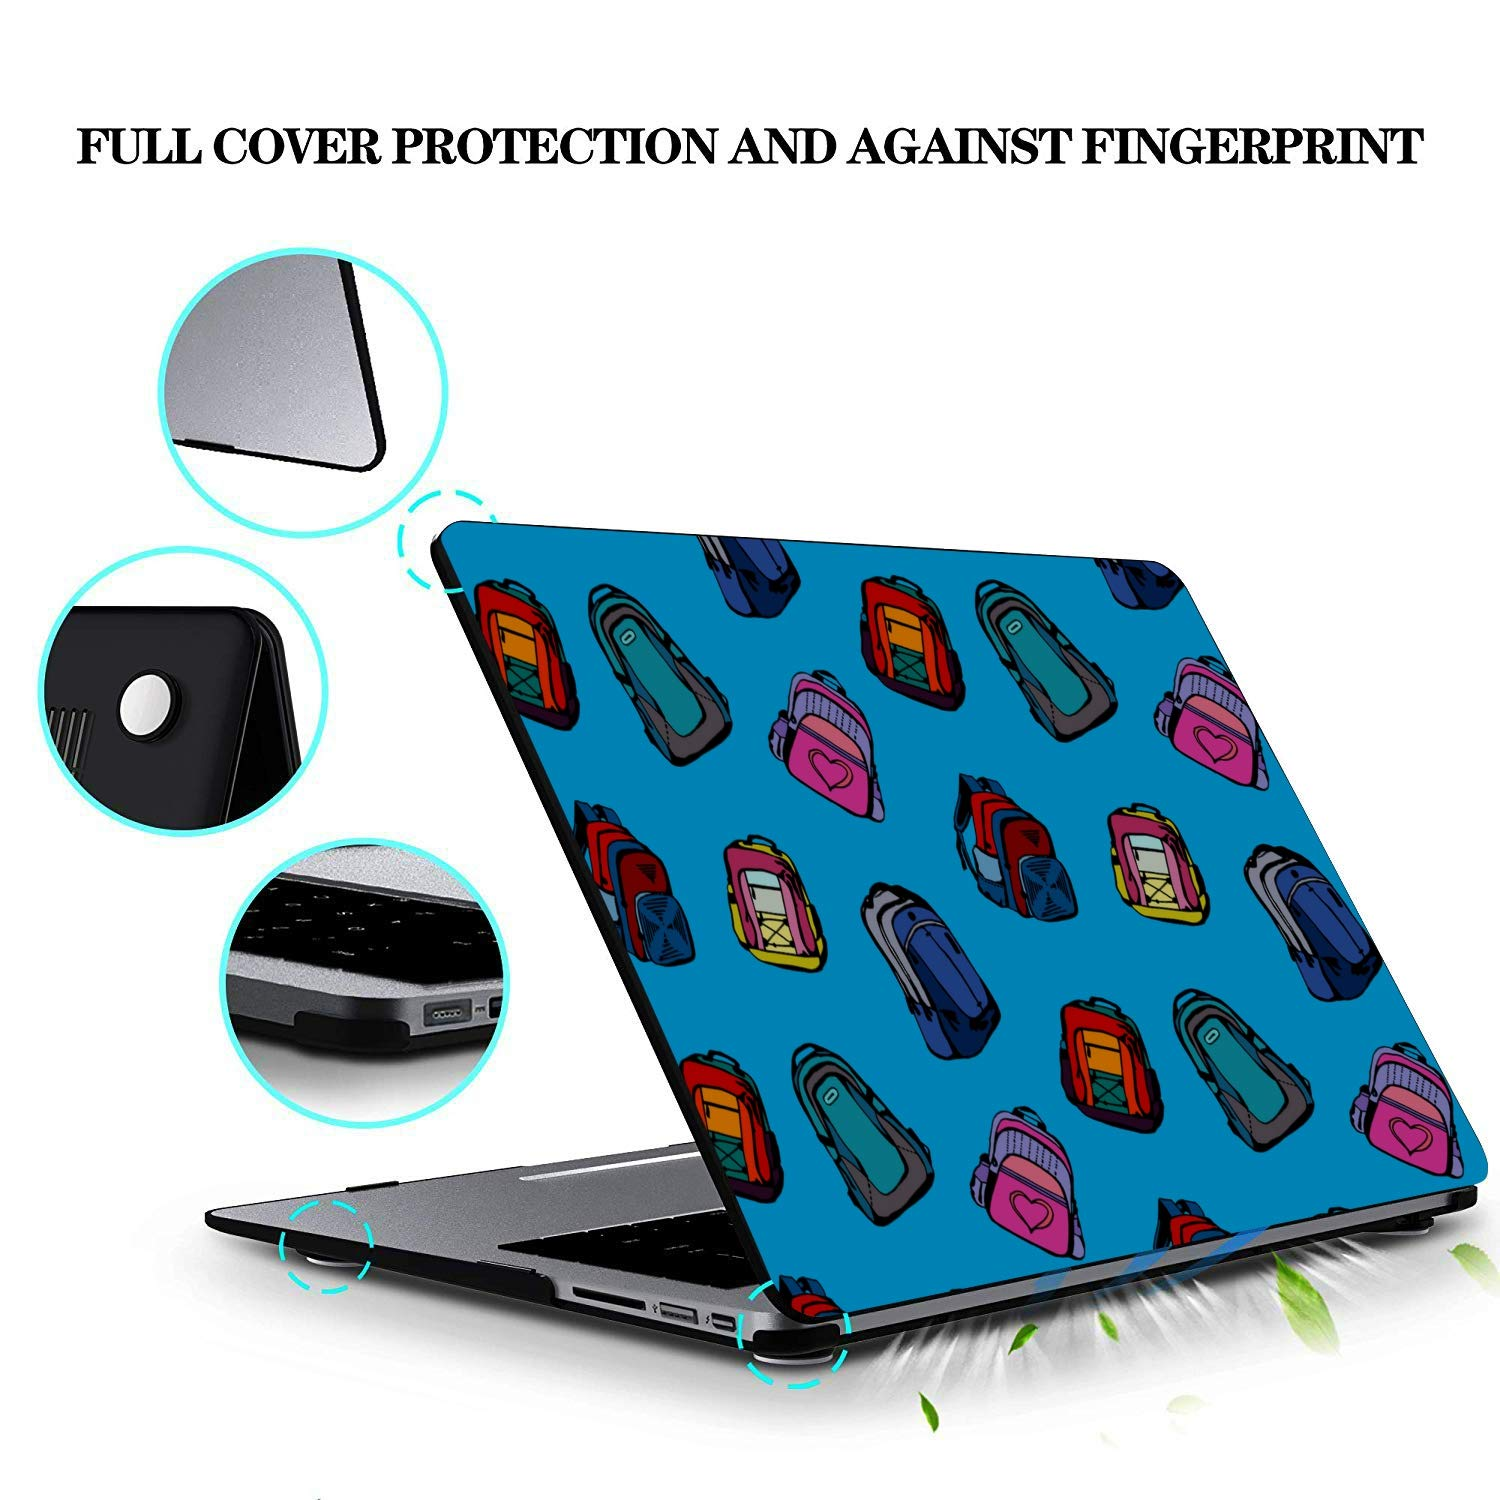 MacBook Pro Computer Case School Bag Children Backpack Ideas Plastic Hard Shell Compatible Mac Air 11 Pro 13 15 13 Inch Laptop Case Protection for MacBook 2016-2019 Version